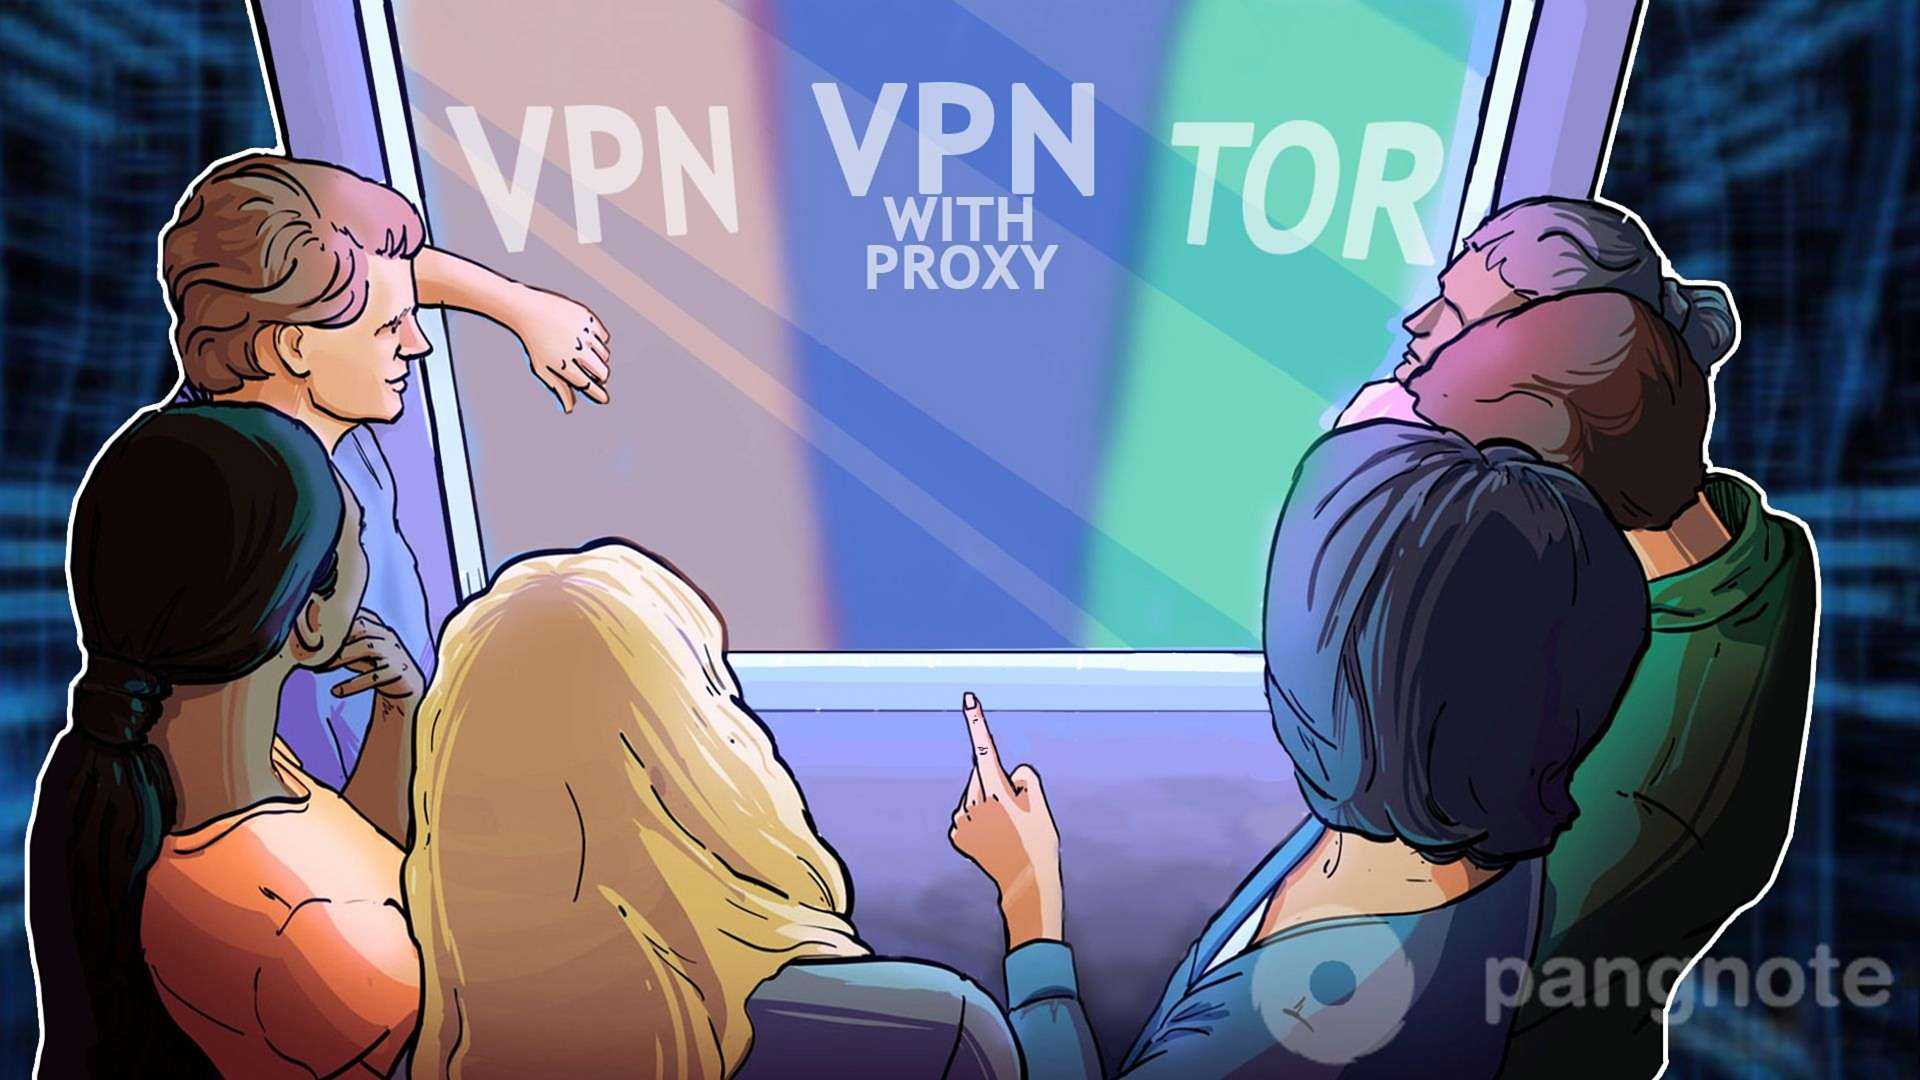 How does it work and VPN comparison VPN with proxy and Thor?